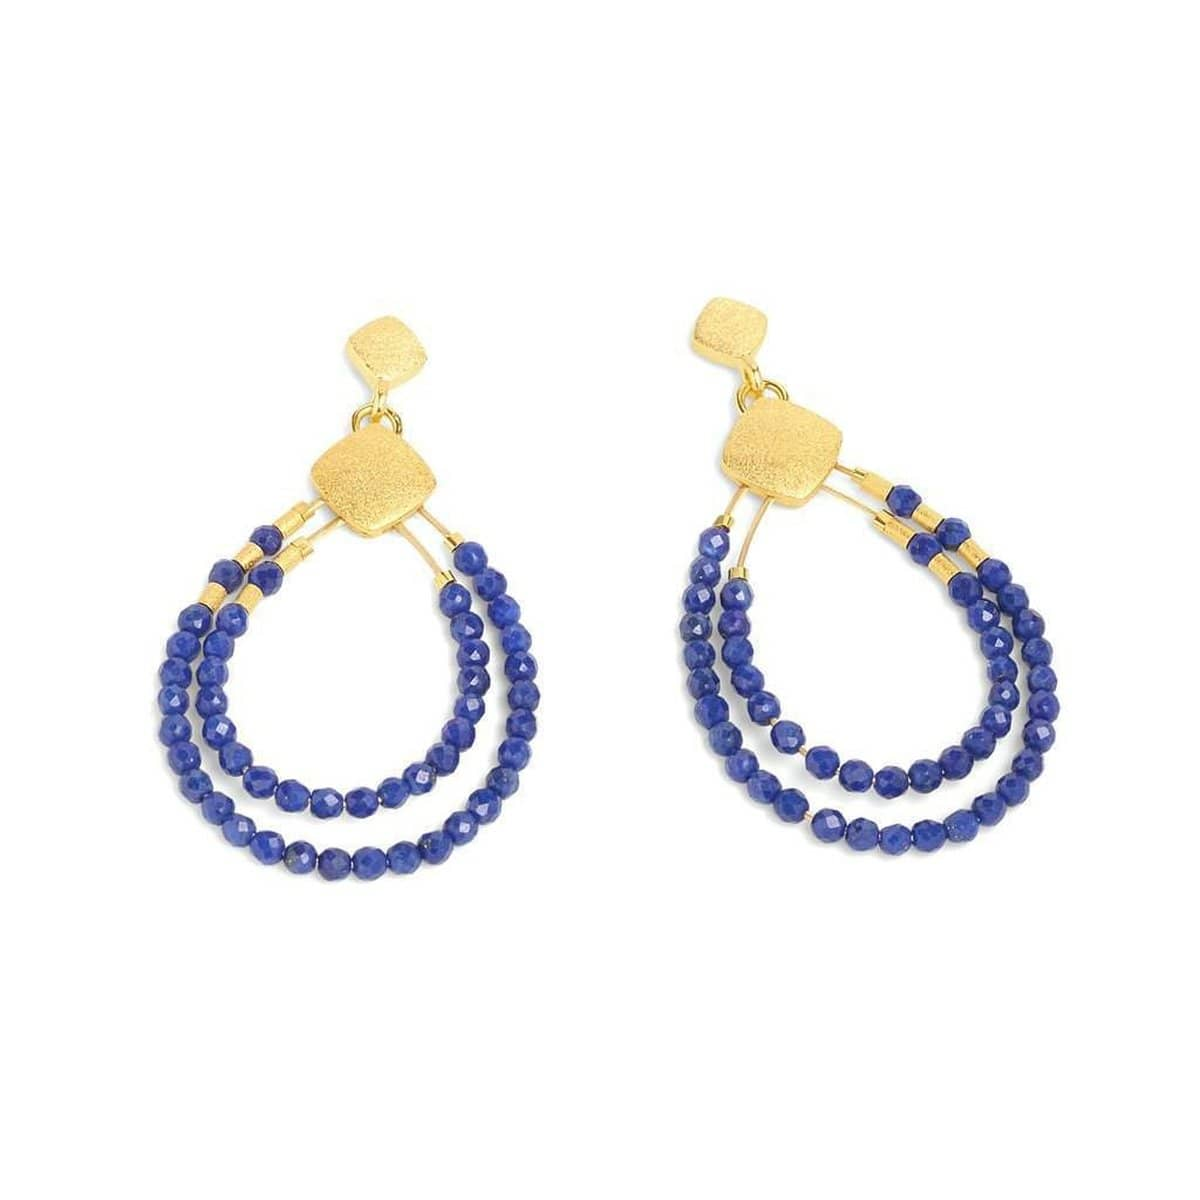 Clini Lapis Lazuli Earrings - 15576236-Bernd Wolf-Renee Taylor Gallery